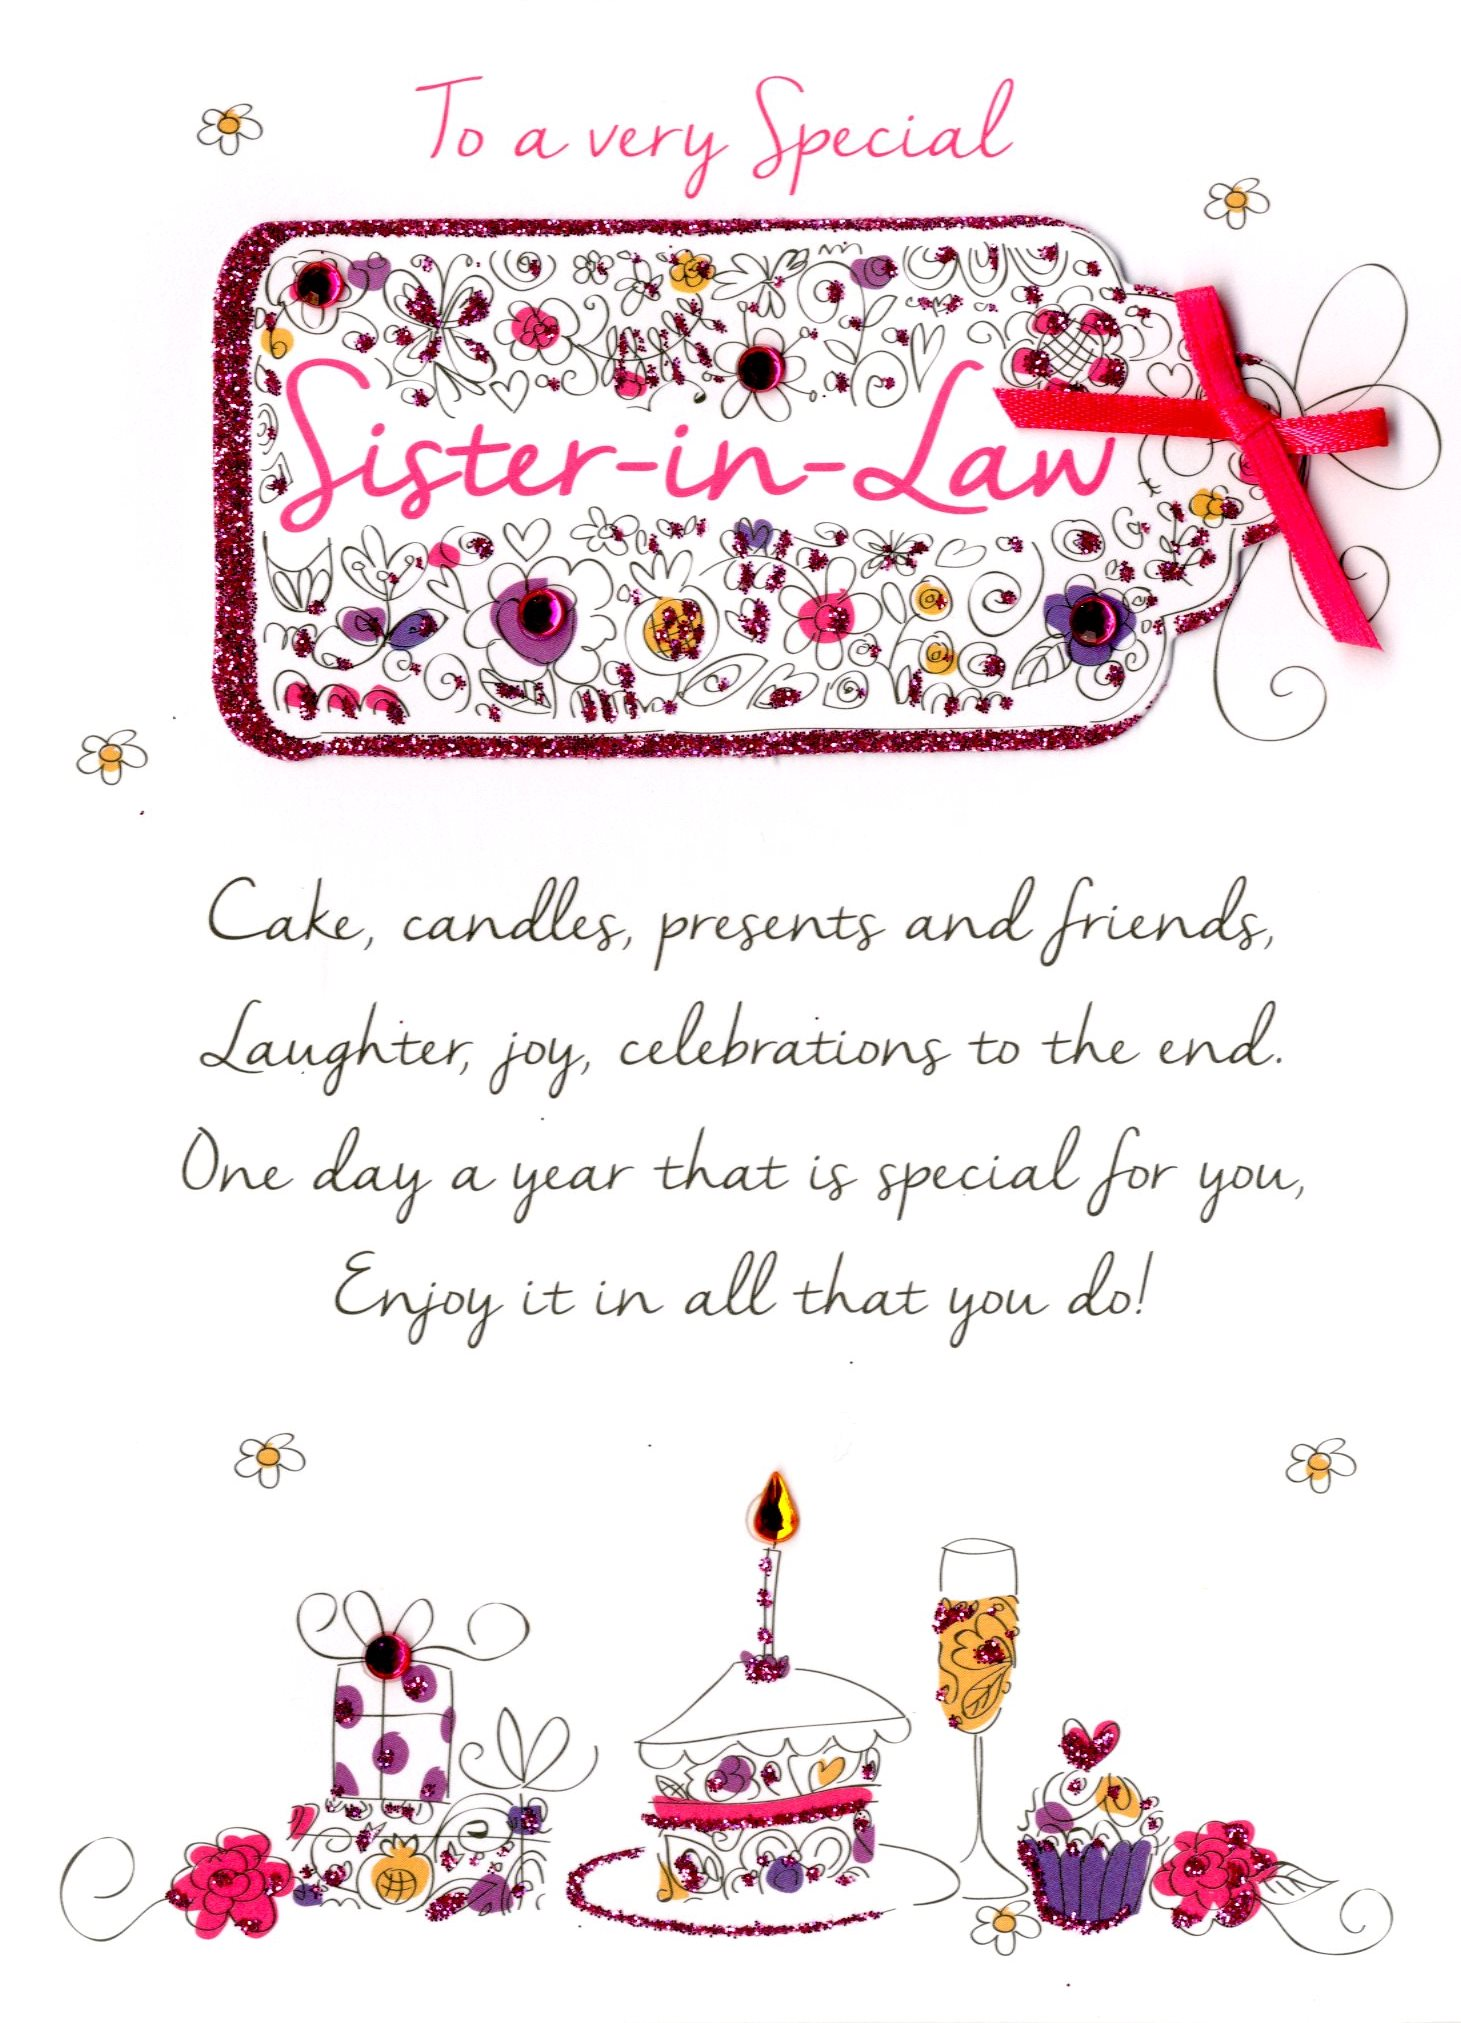 Special Sister-In-Law Birthday Greeting Card | Cards | Love Kates